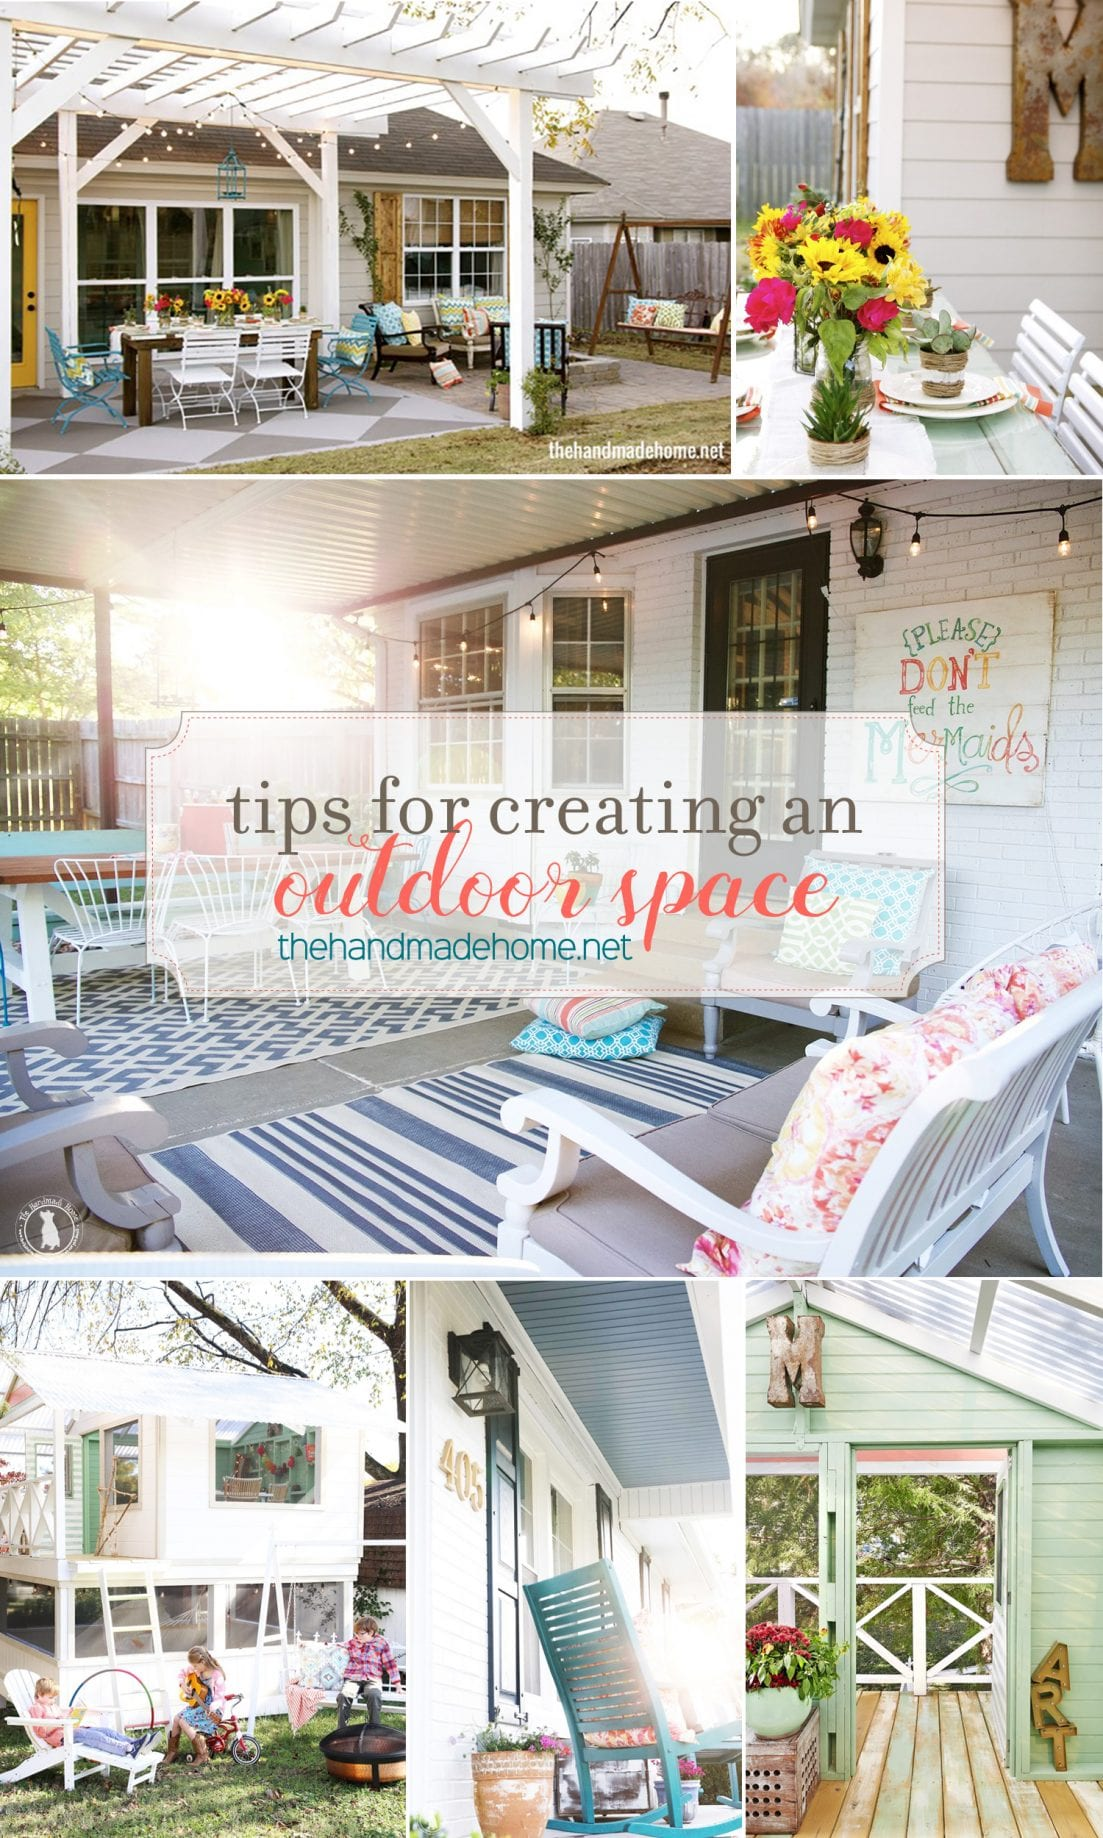 tips for creating an outdoor space